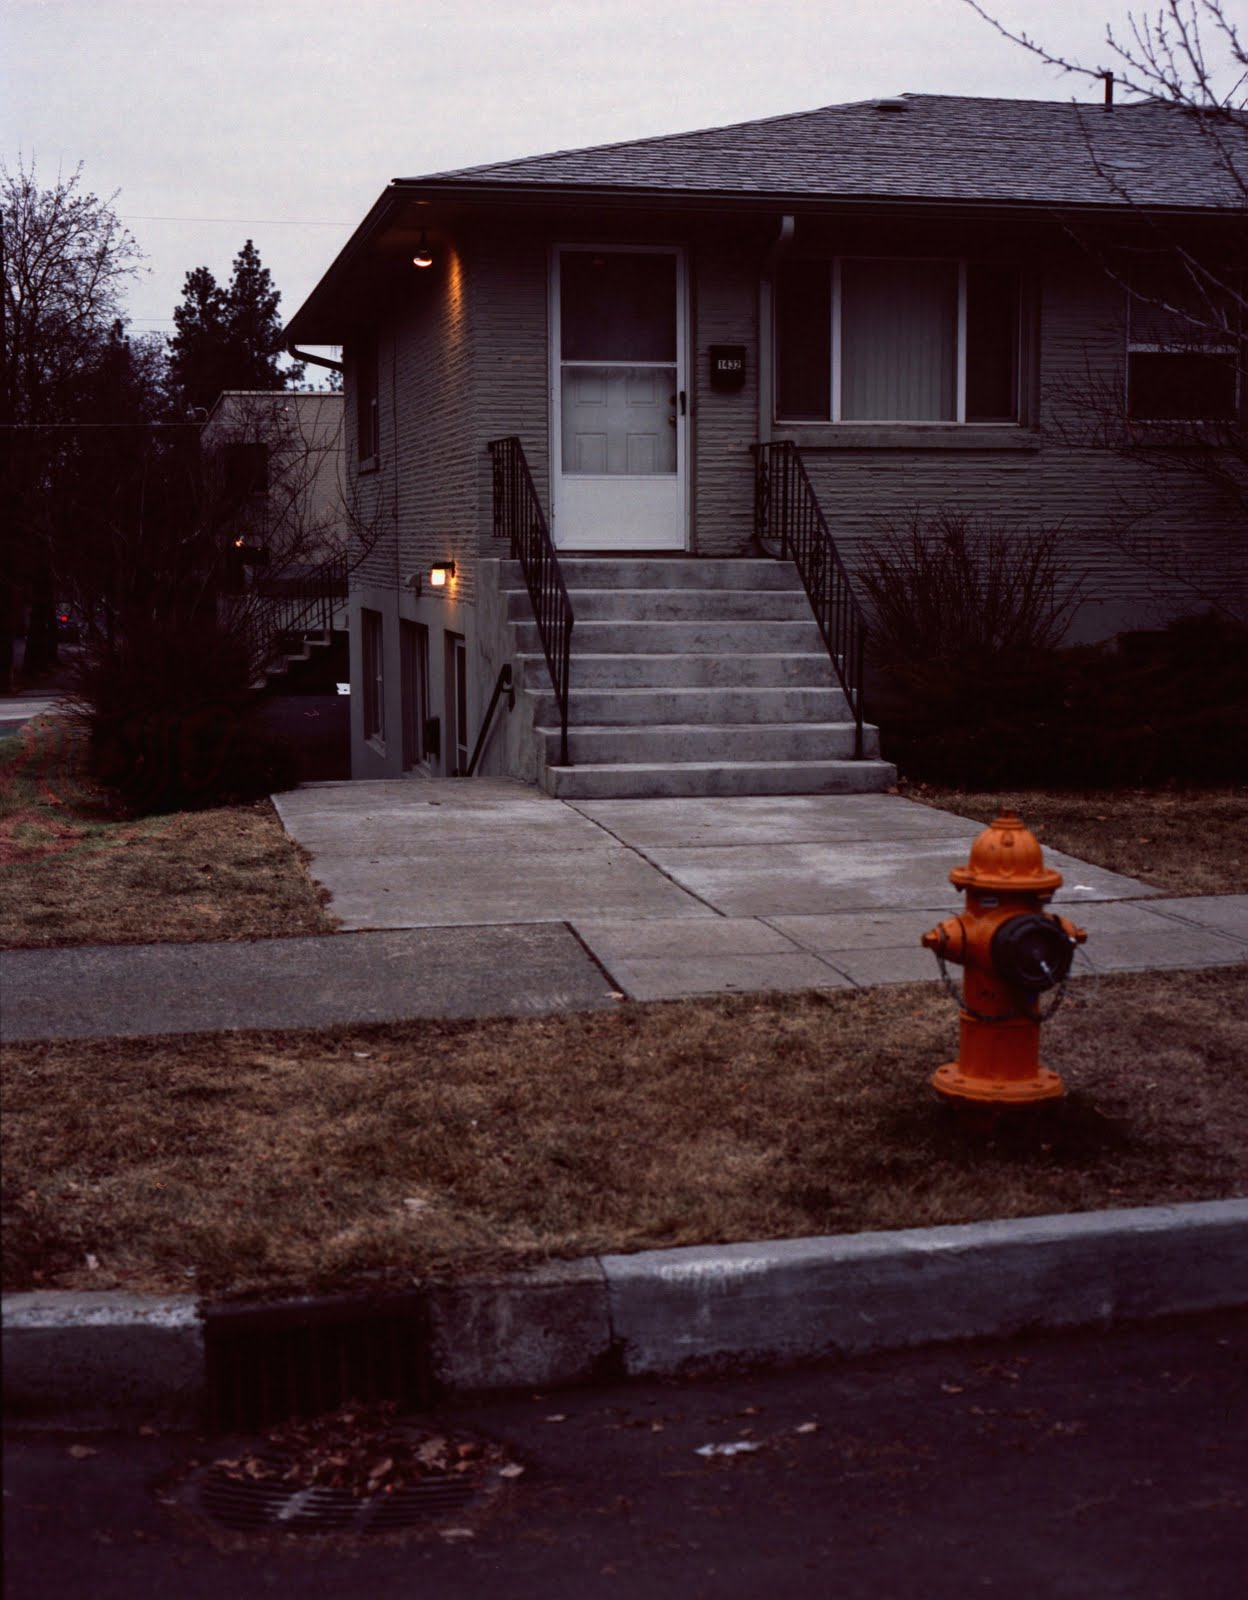 [spokane+side+lights+and+hydrant]